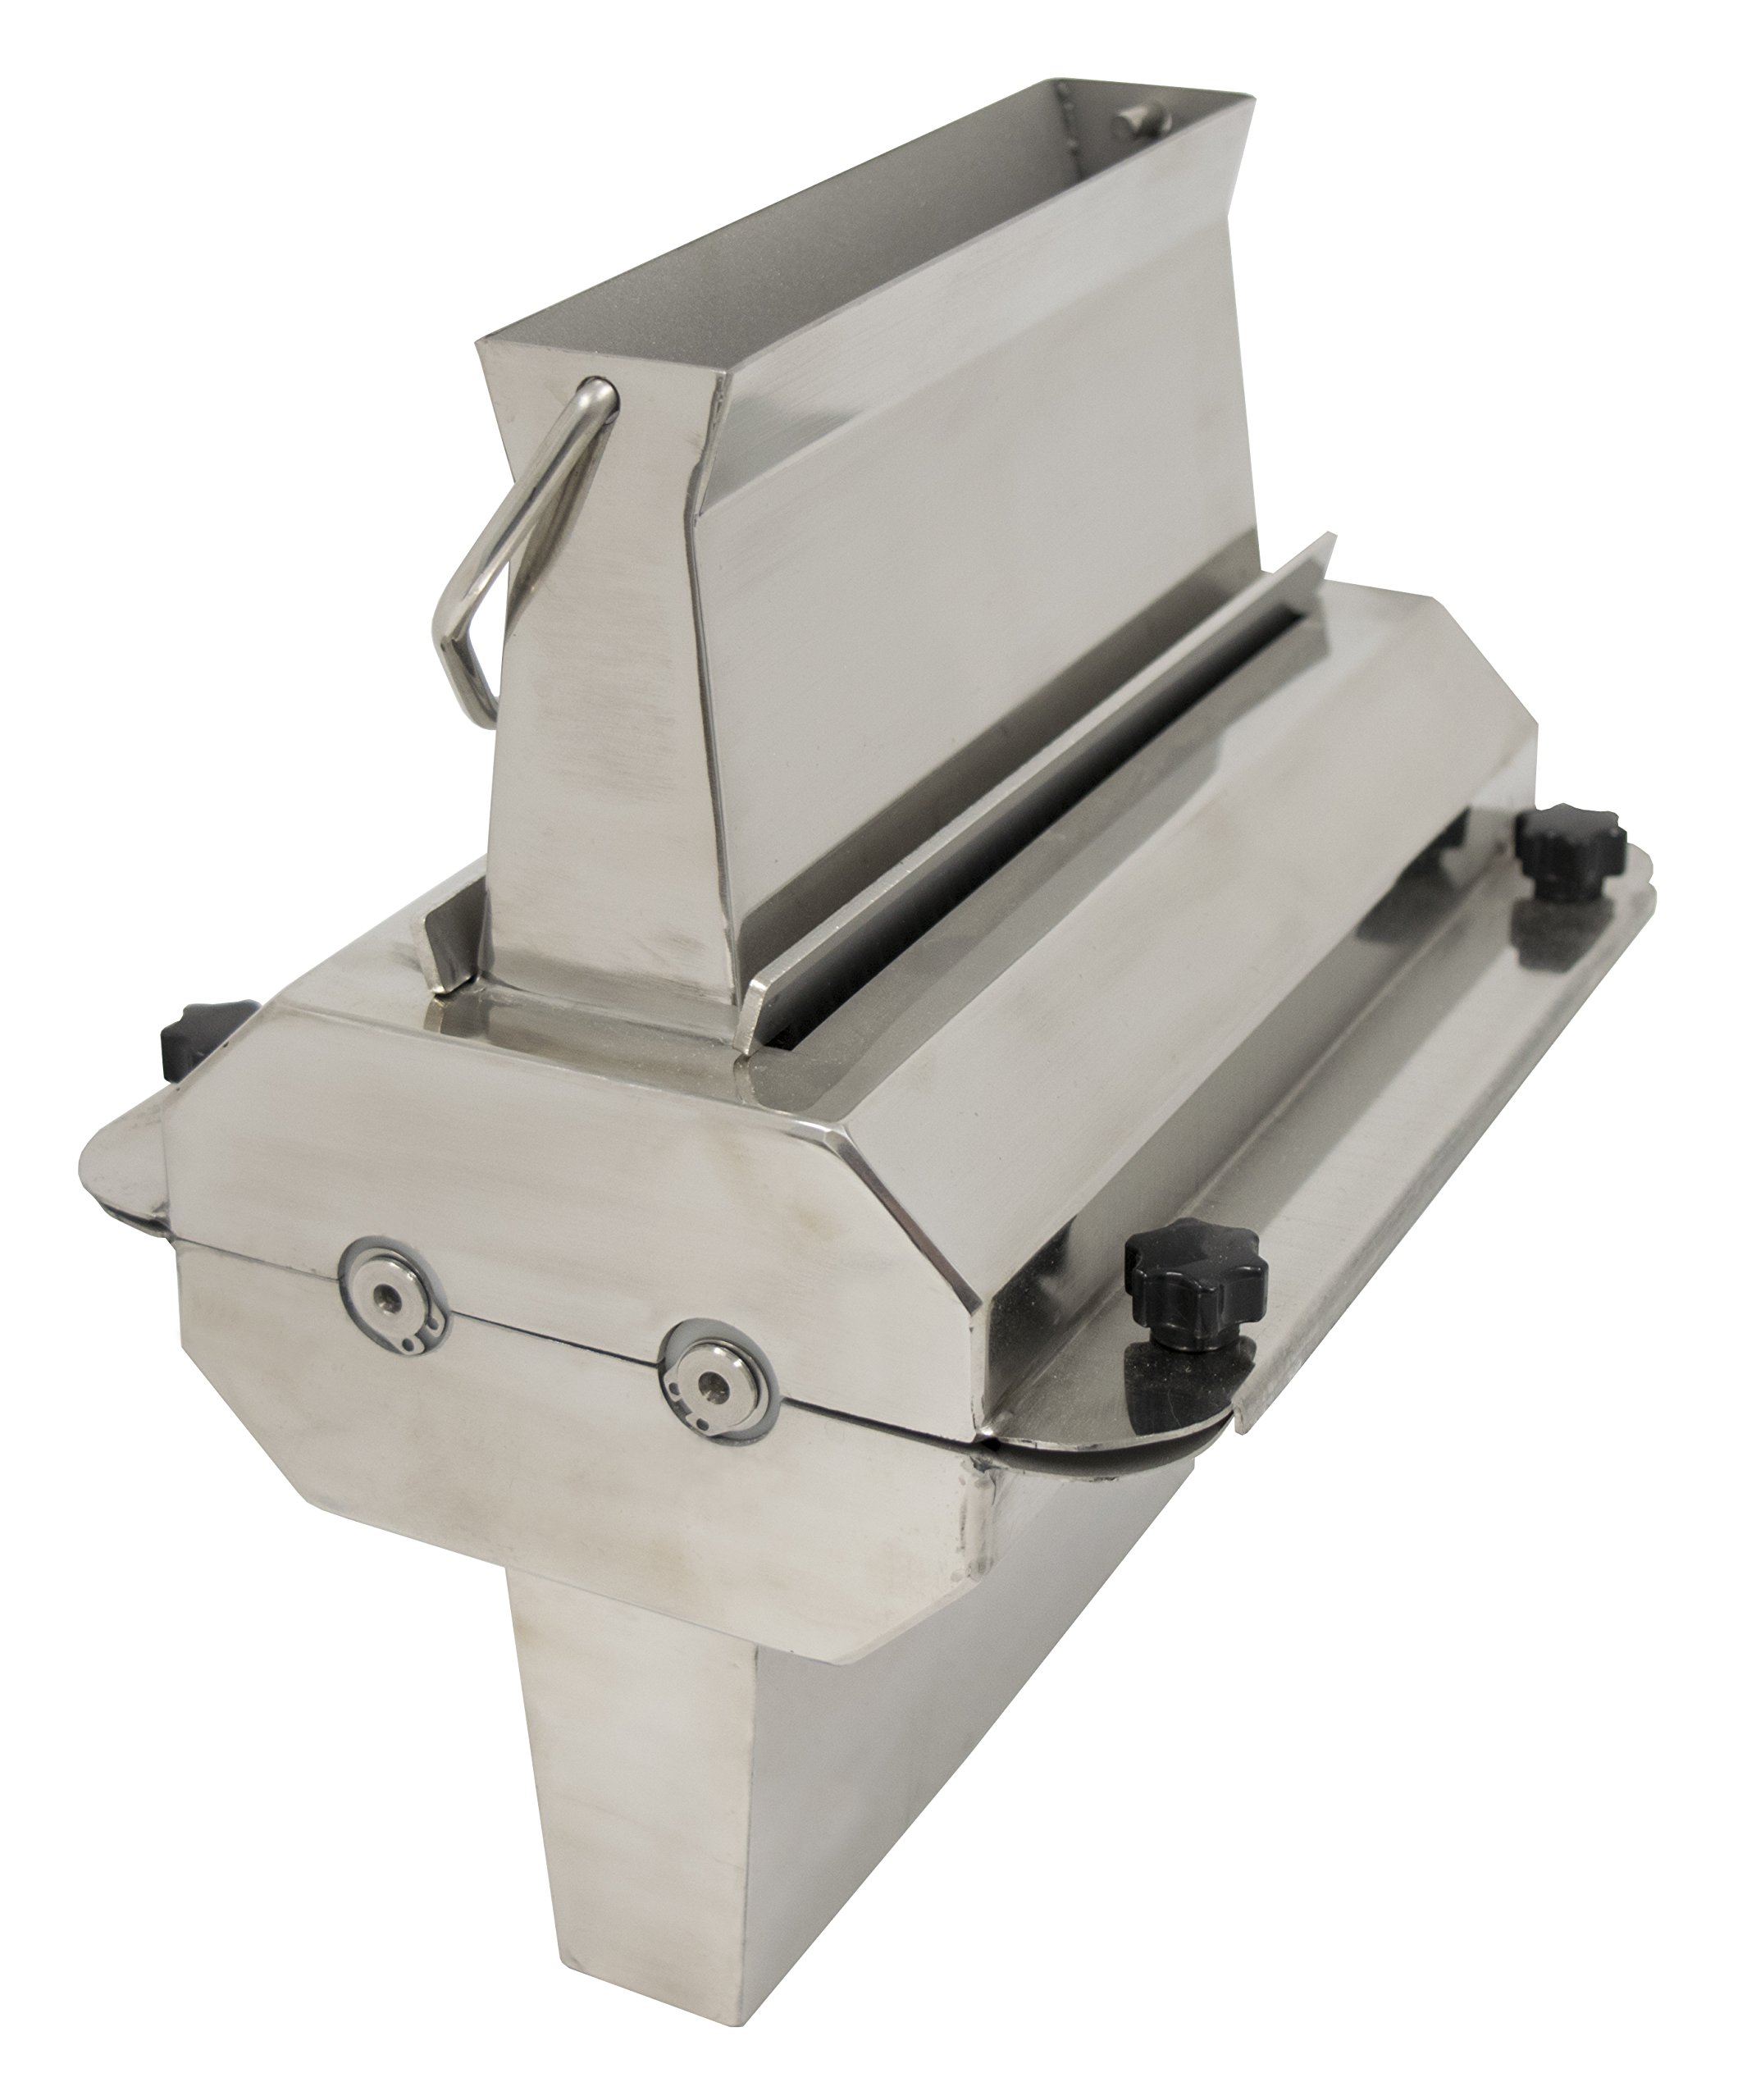 American Eagle Meat Tenderizer Attachment Stainless Steel Fits #12 Hub by American Eagle Food Machinery